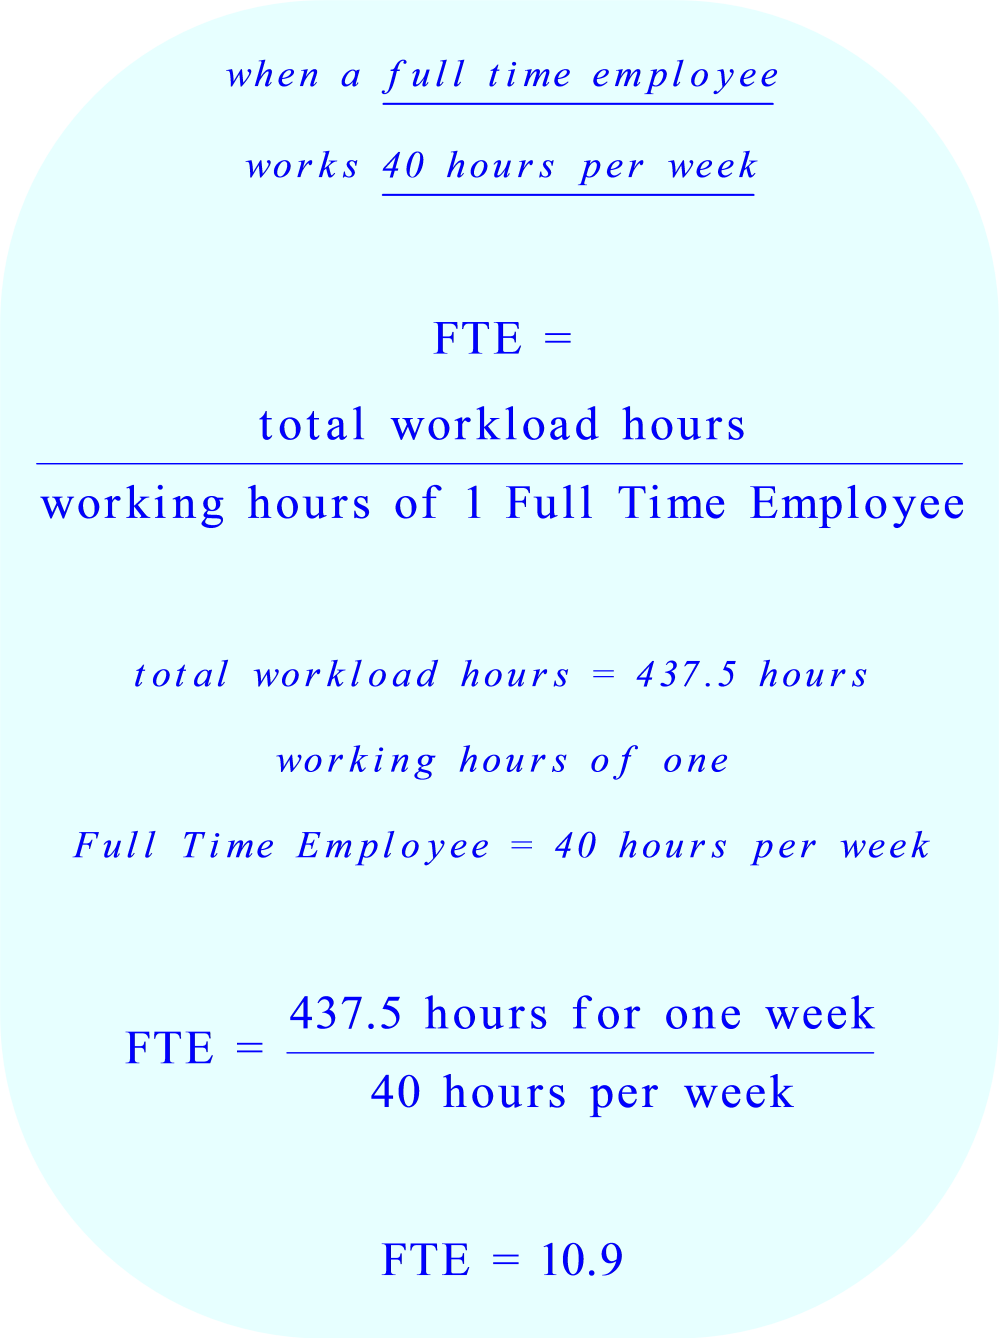 Calculation of FTE if  the definition of a full time employee is:  works 40 hours per week 